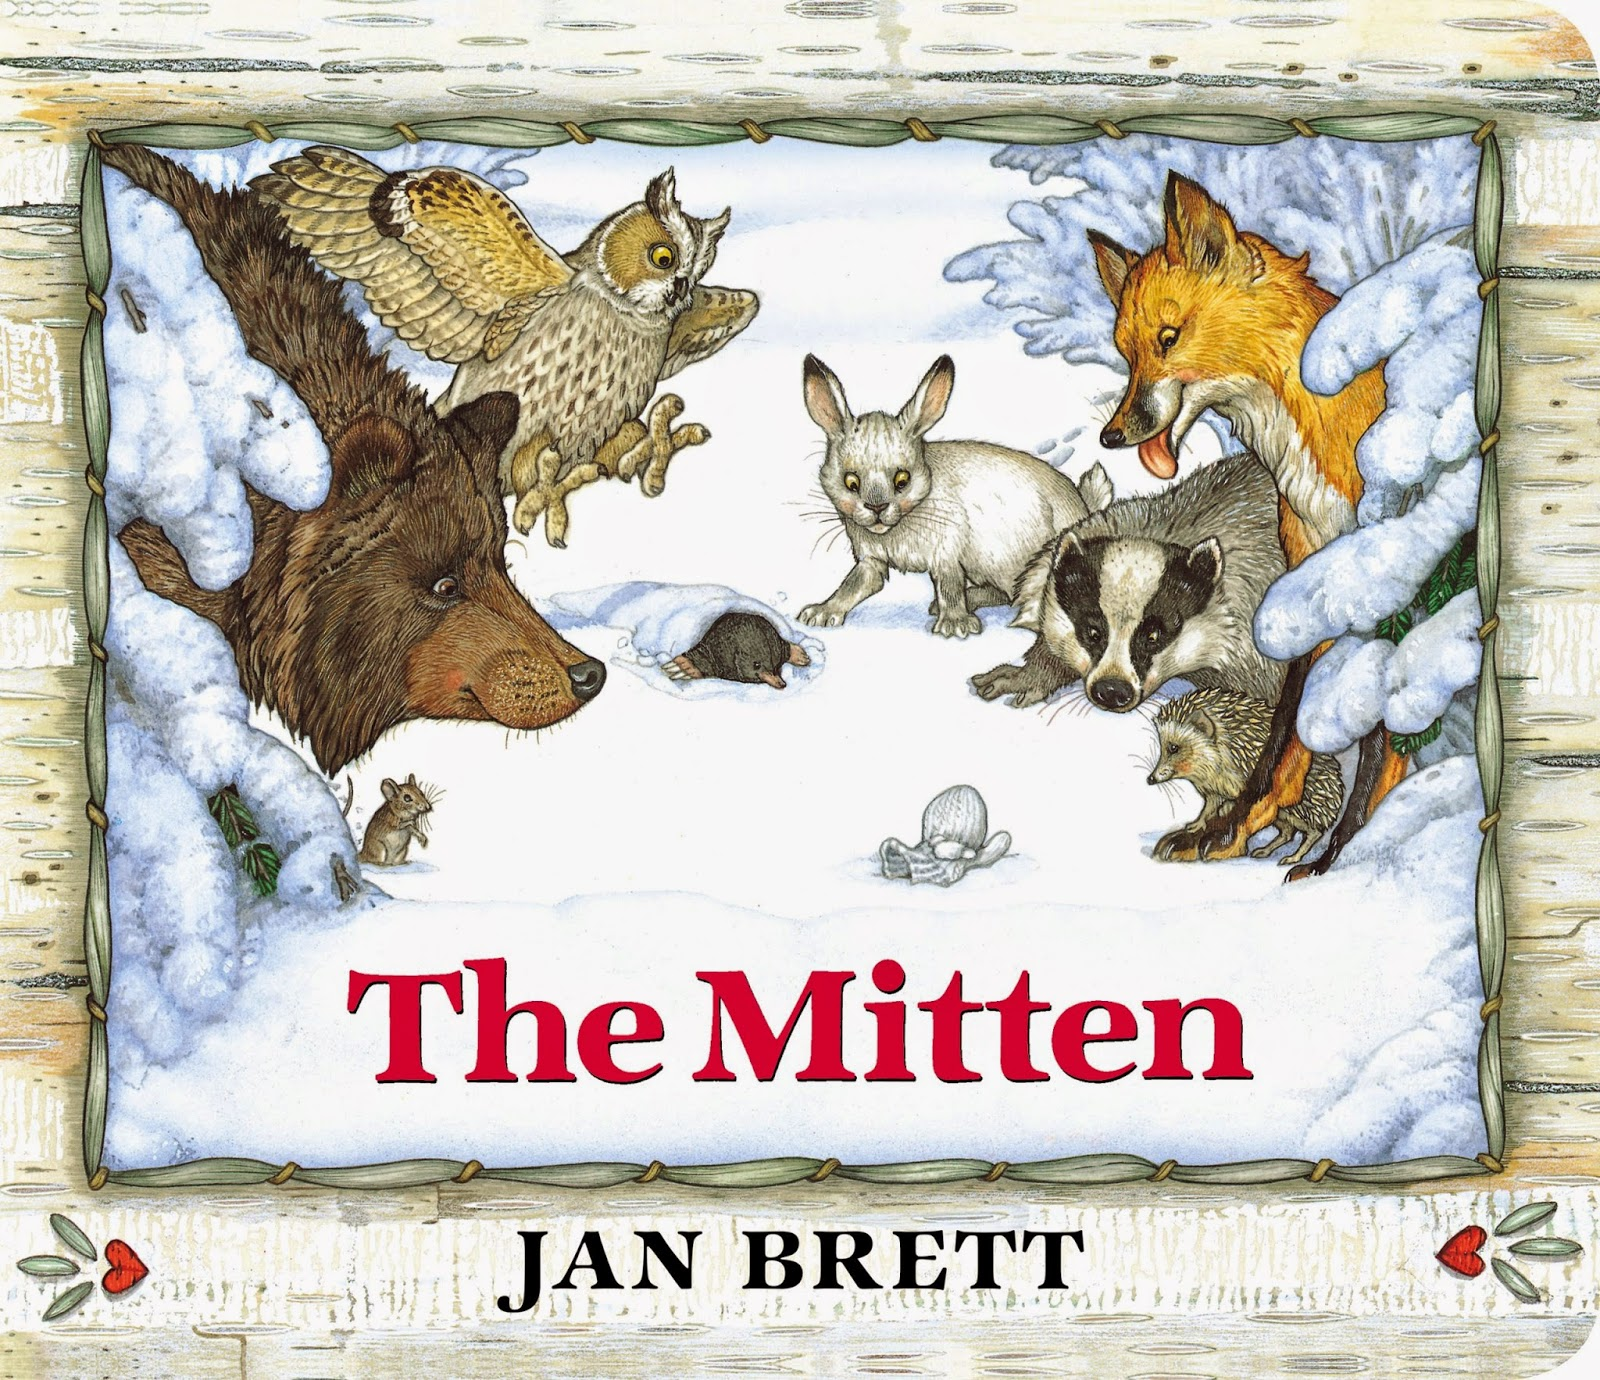 It's just a photo of Shocking The Mitten Printable Book